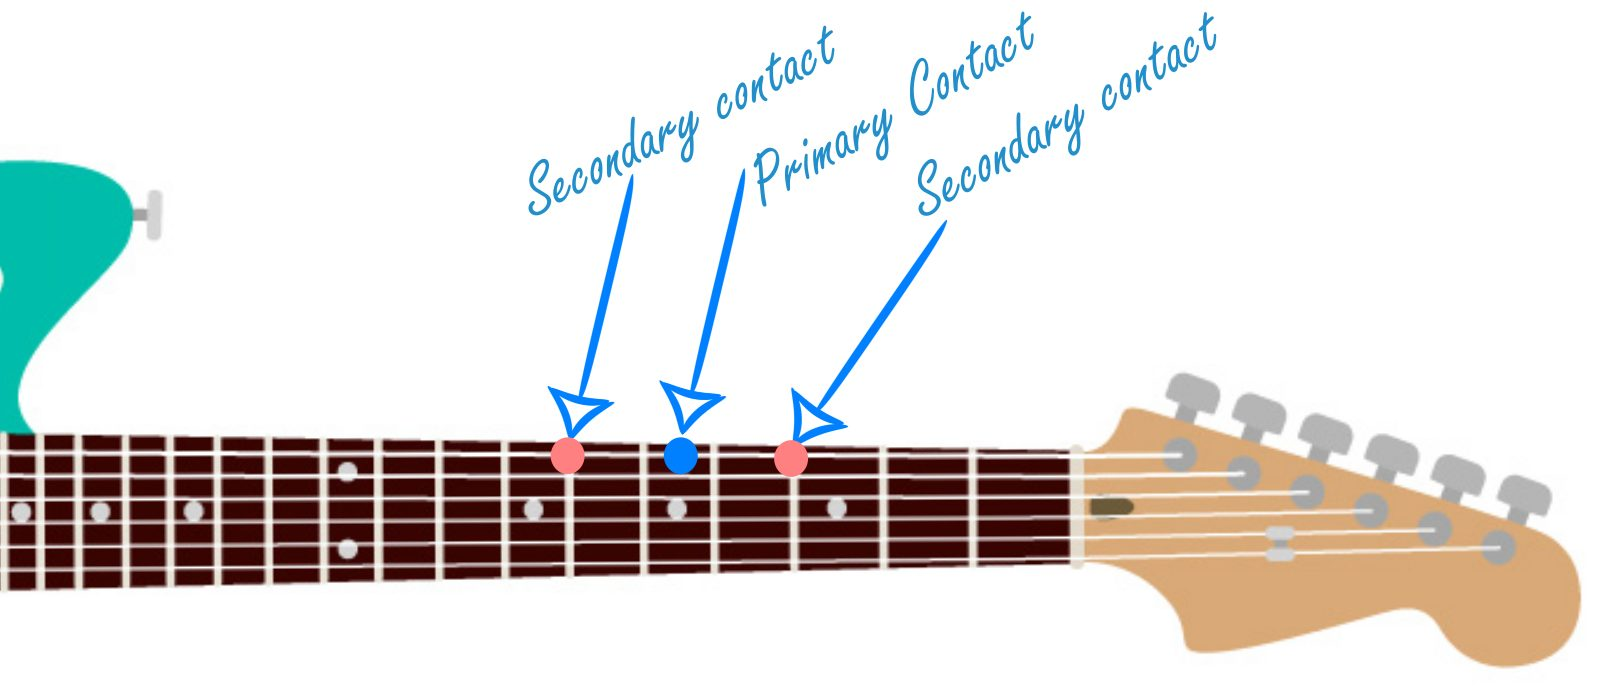 Secondary Contact Graphic